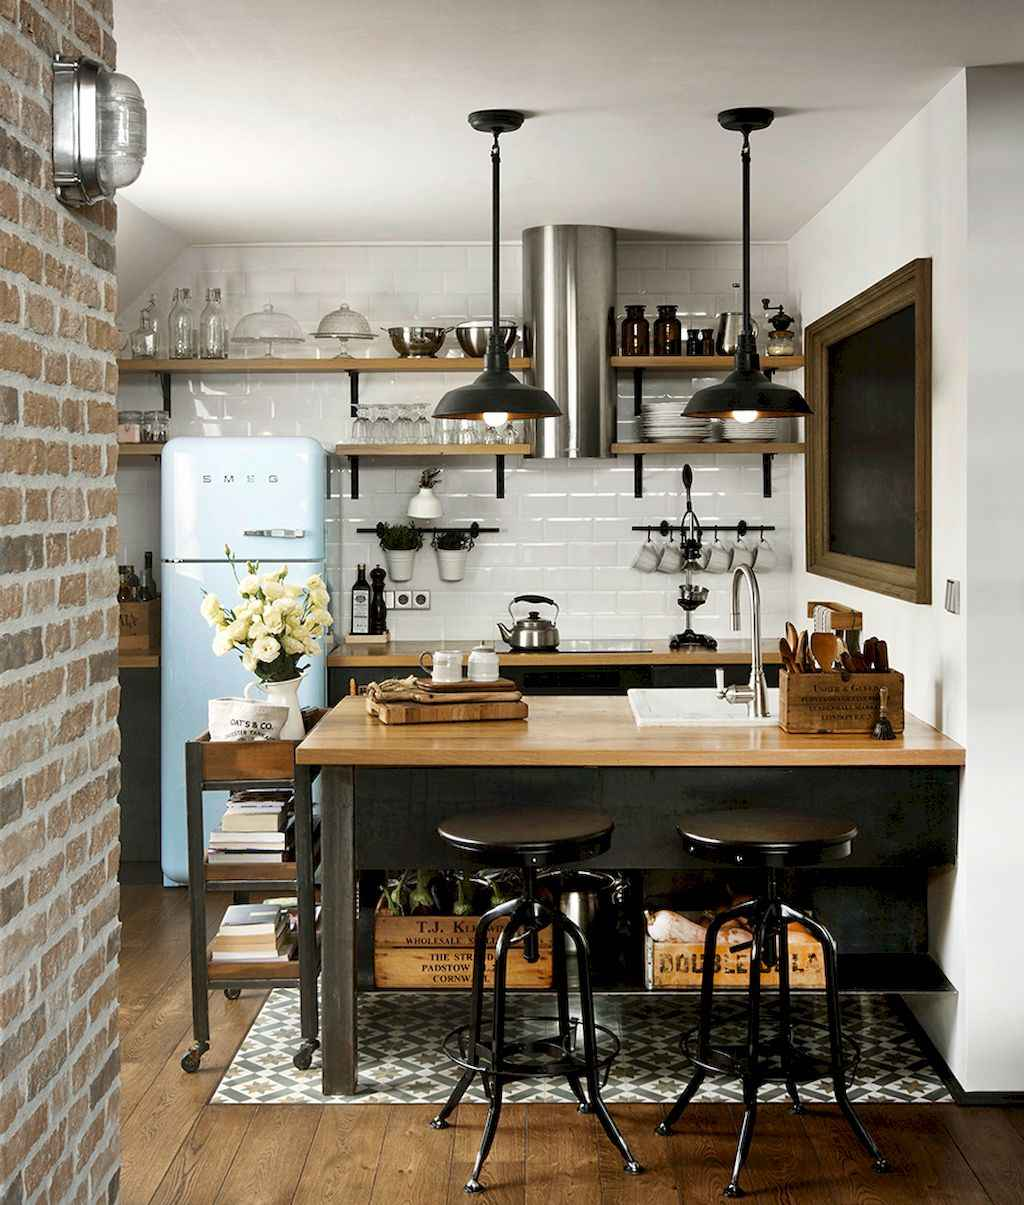 Couples first apartment decorating ideas (29)